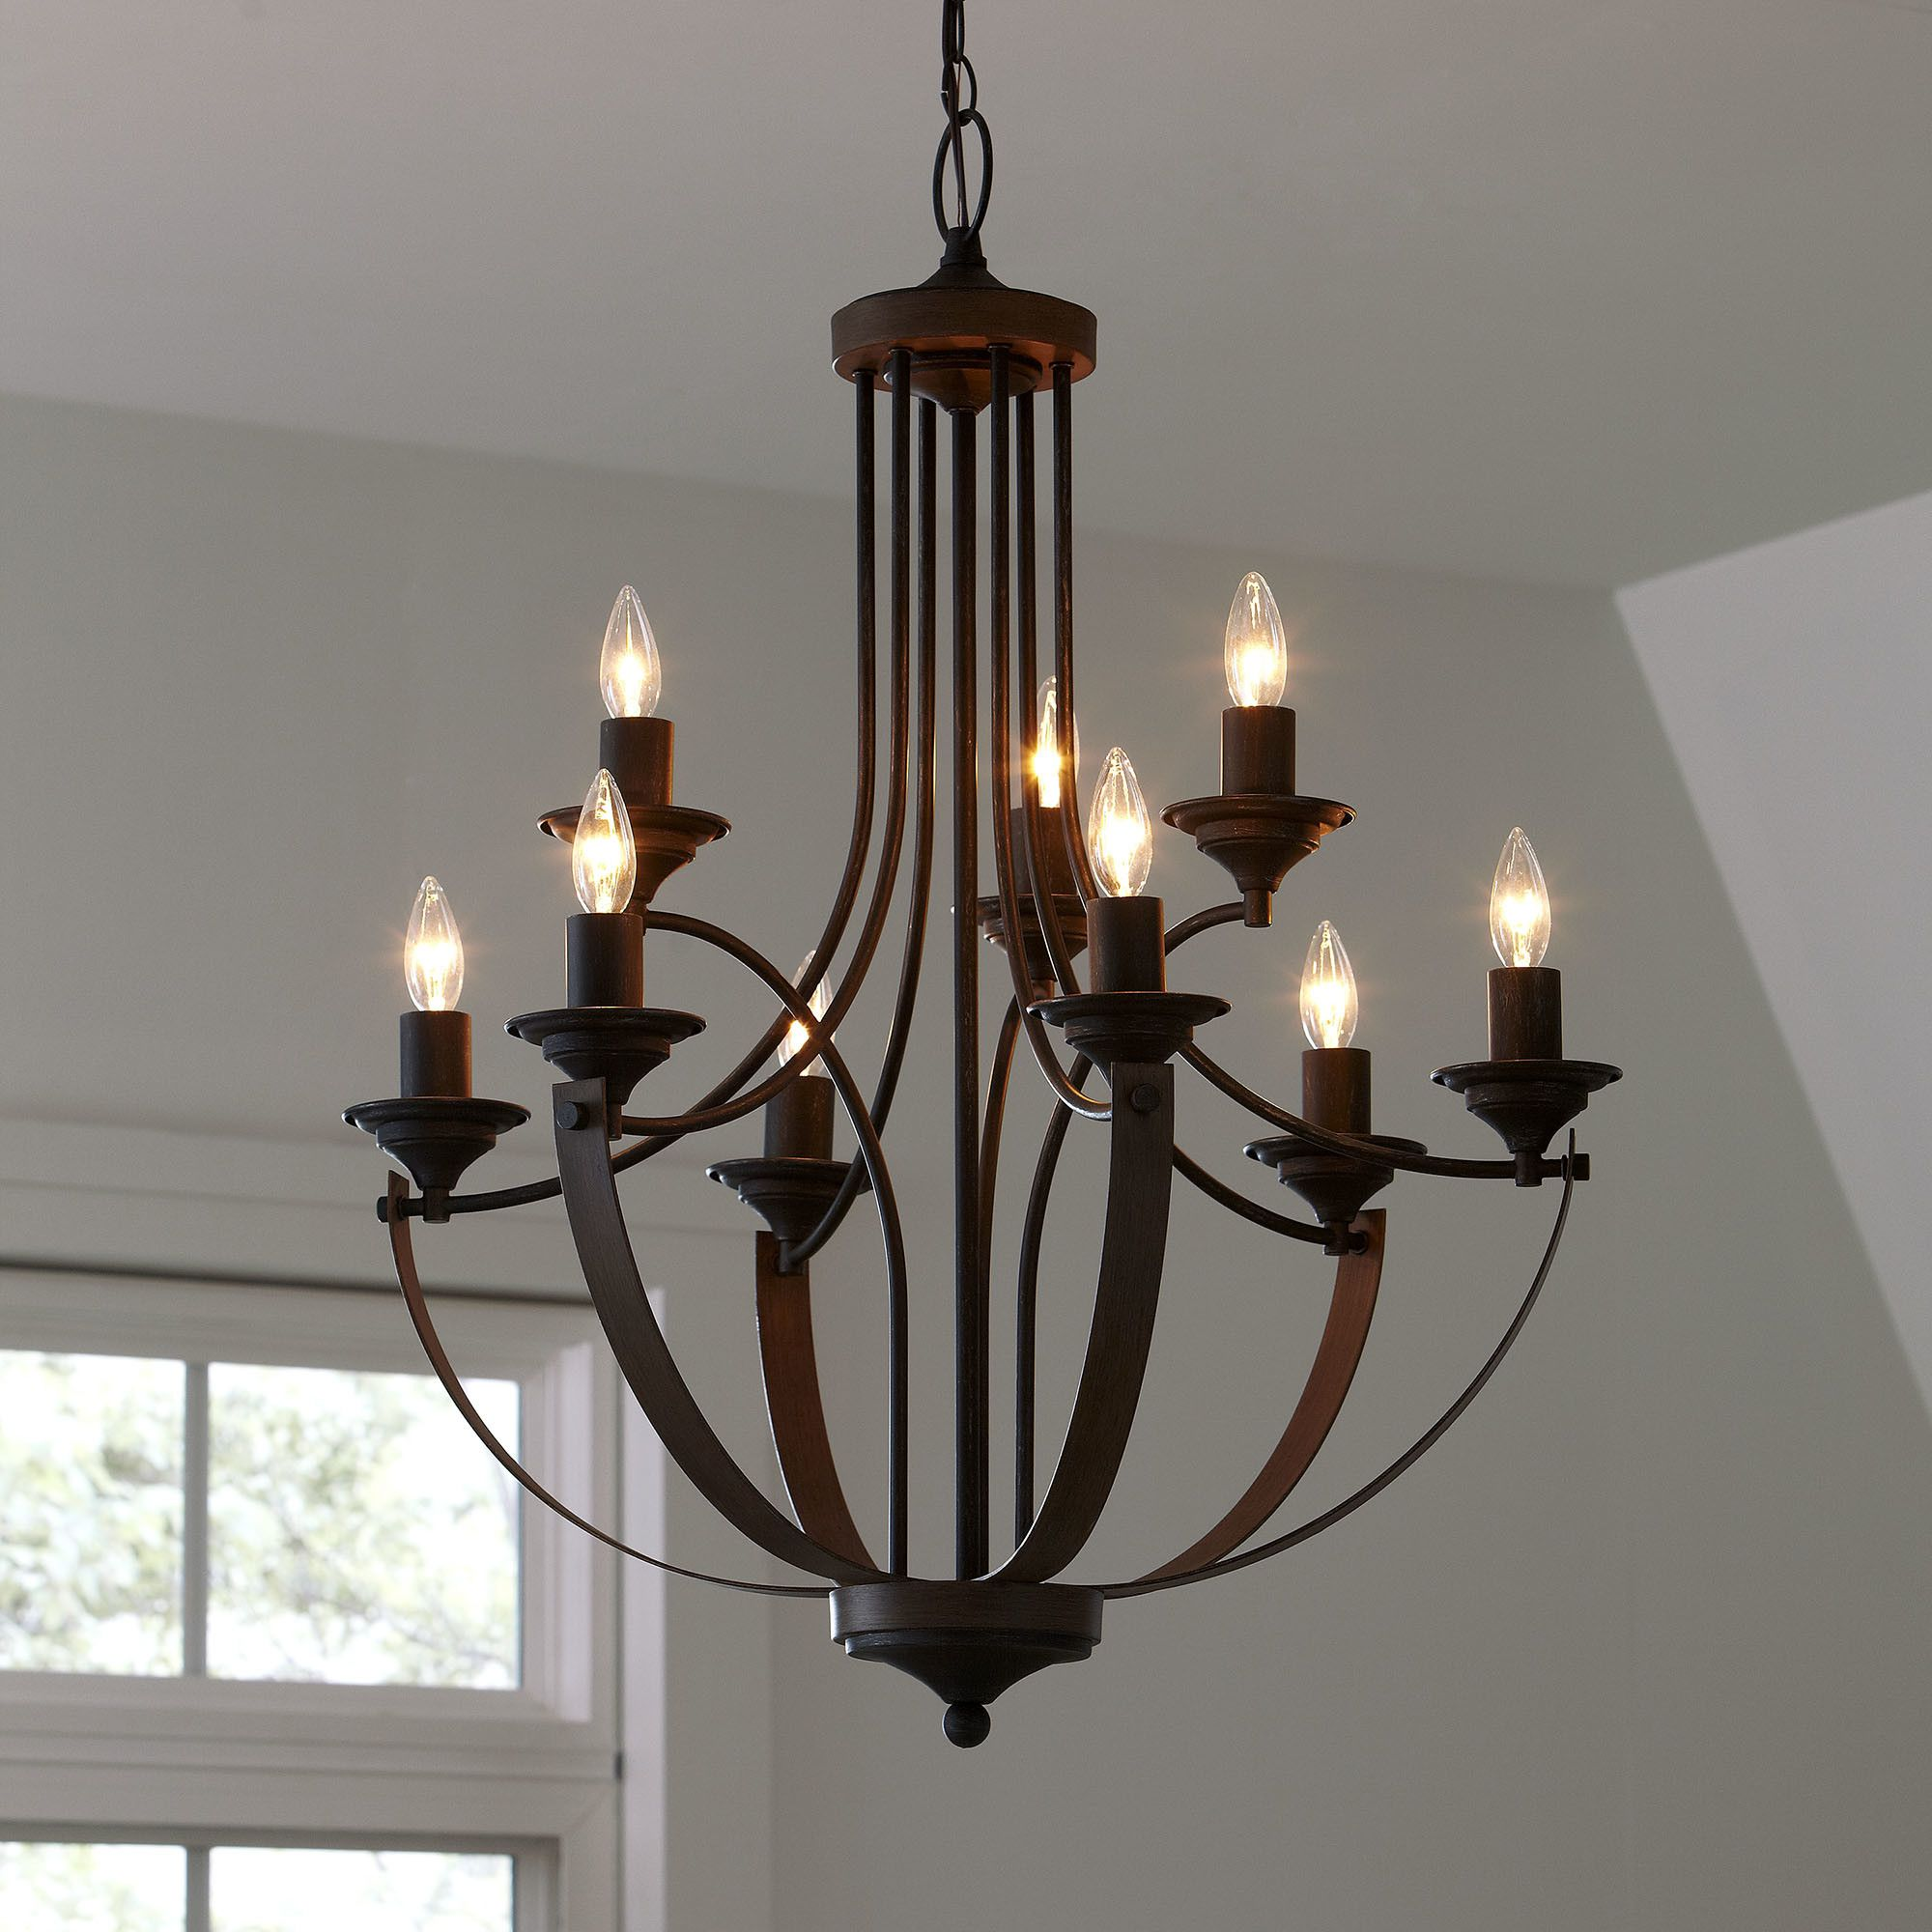 Camilla 9 Light Candle Style Empire Chandelier In 2020 Rustic